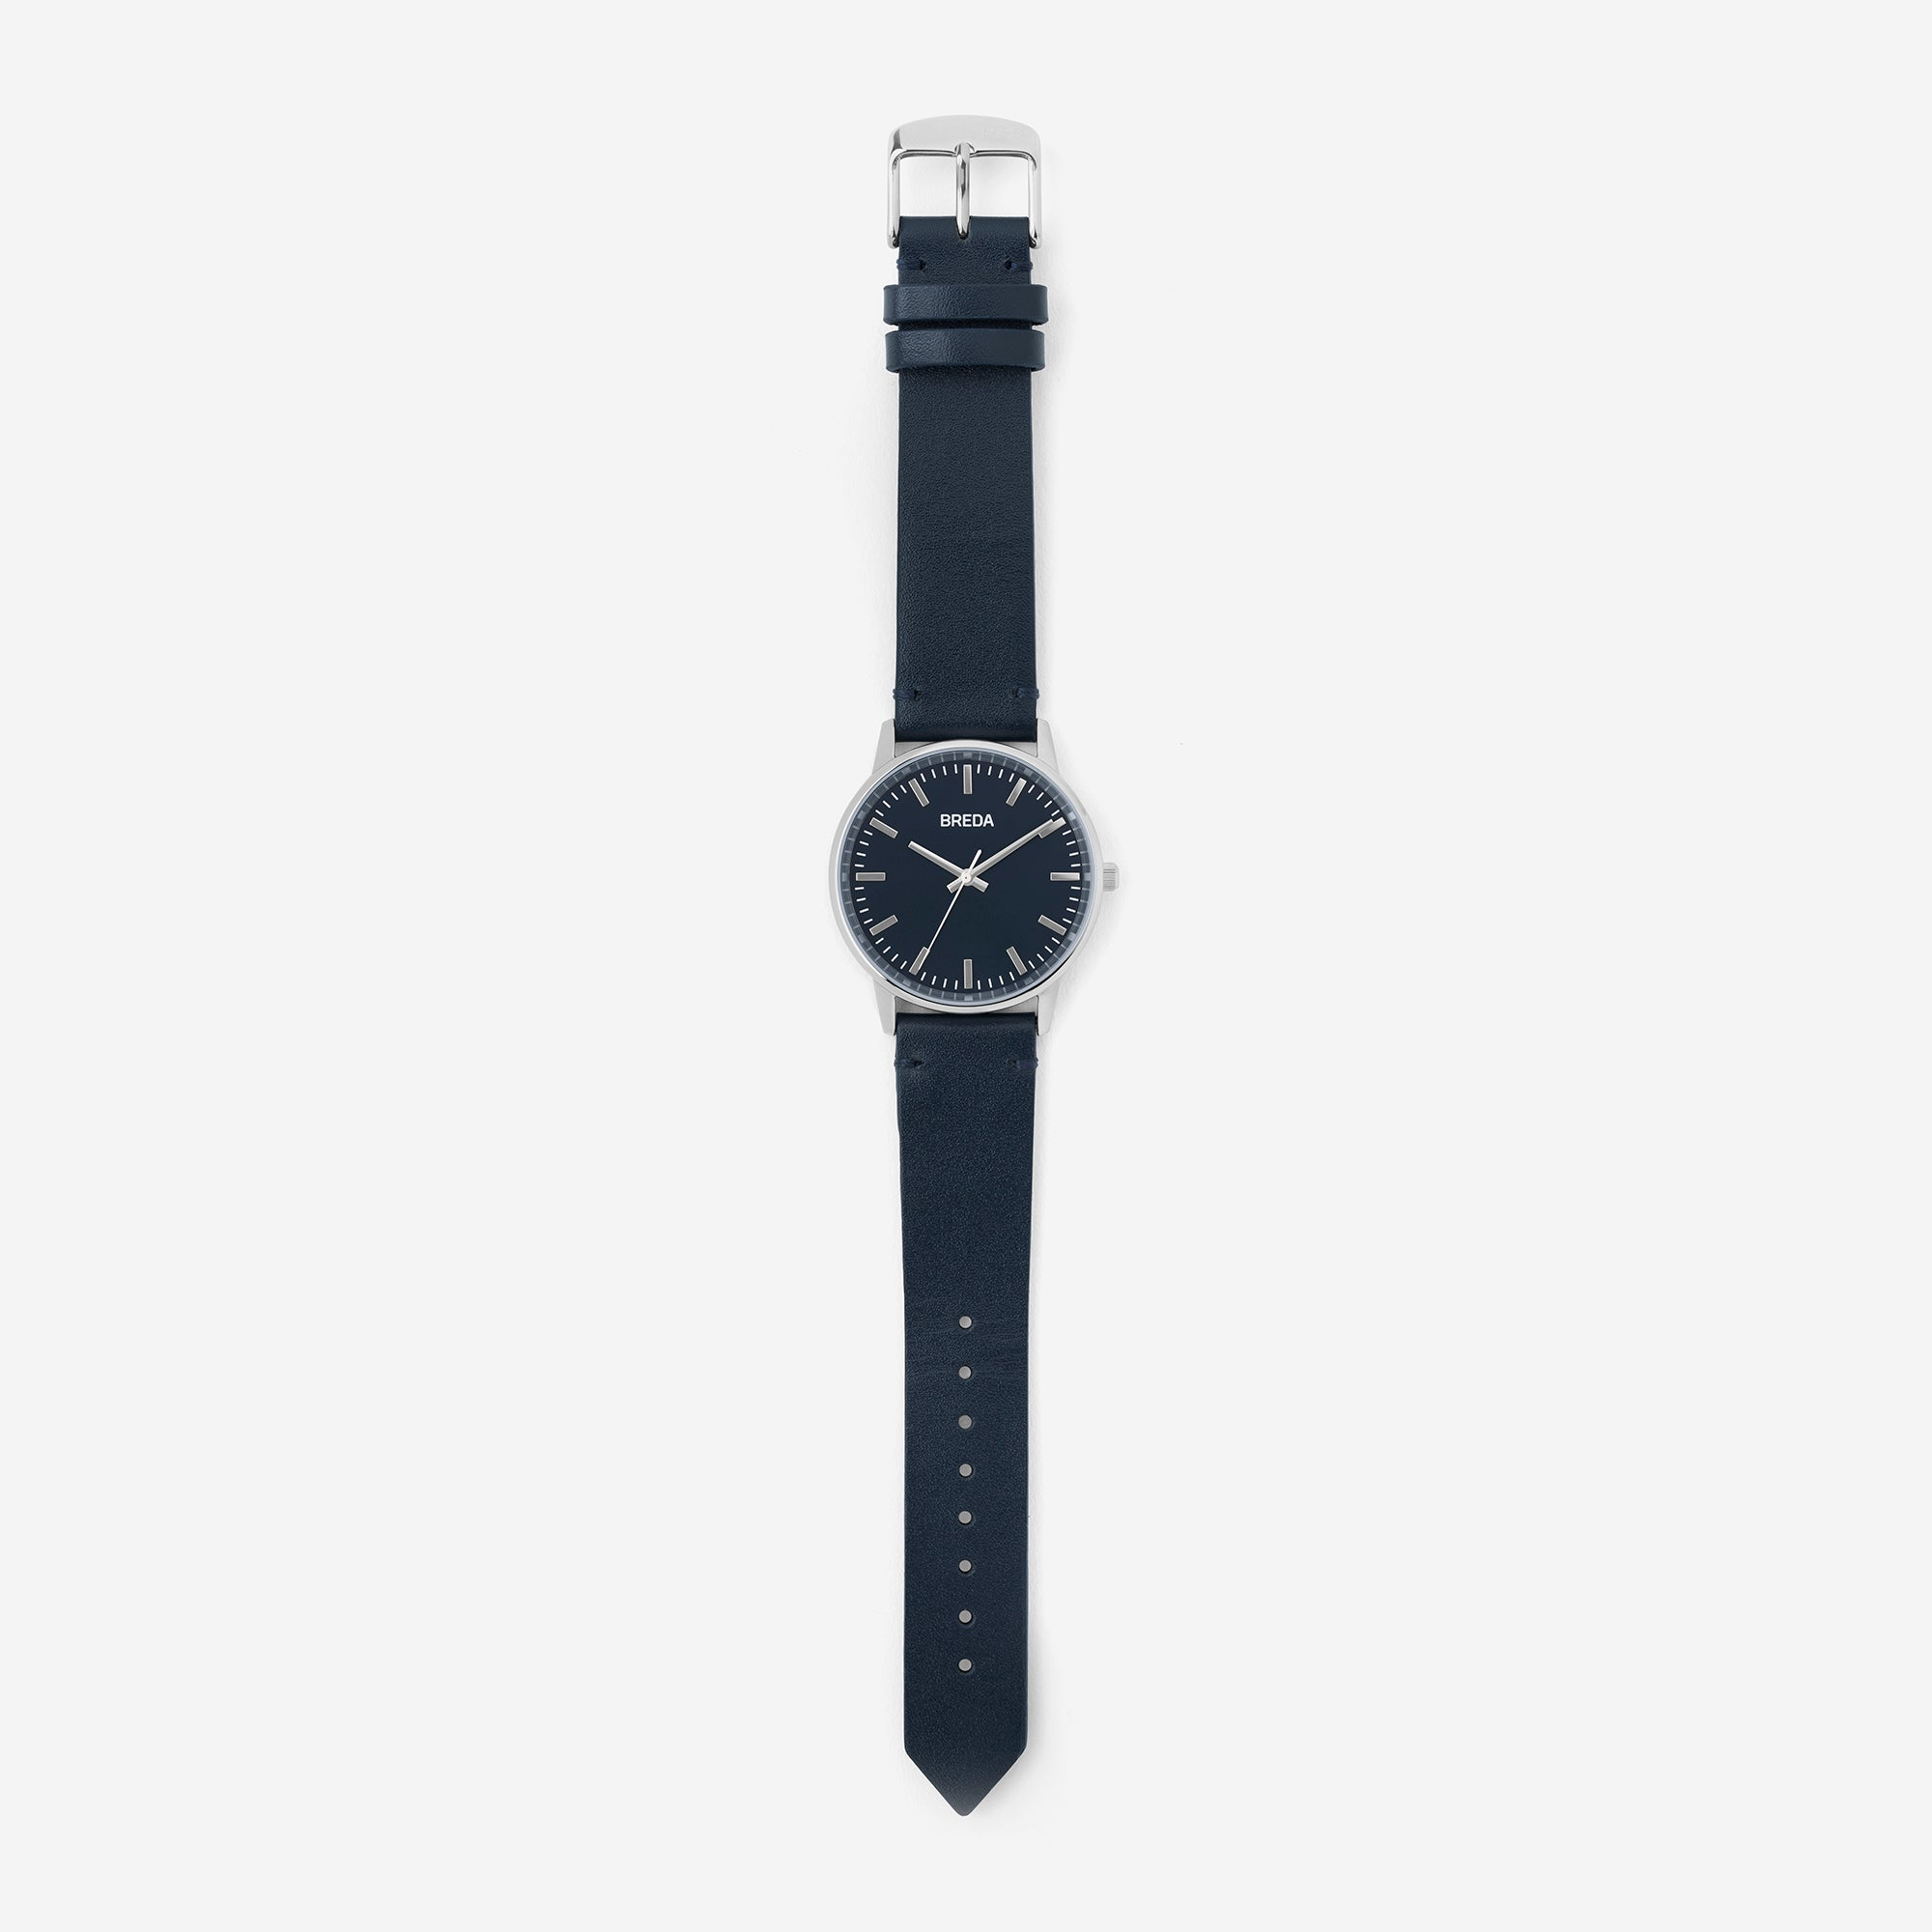 //cdn.shopify.com/s/files/1/0879/6650/products/breda-zapf-1697m-silver-navy-leather-watch-long_b731af98-3122-42fd-93db-7a863682c395_1024x1024.jpg?v=1543248418